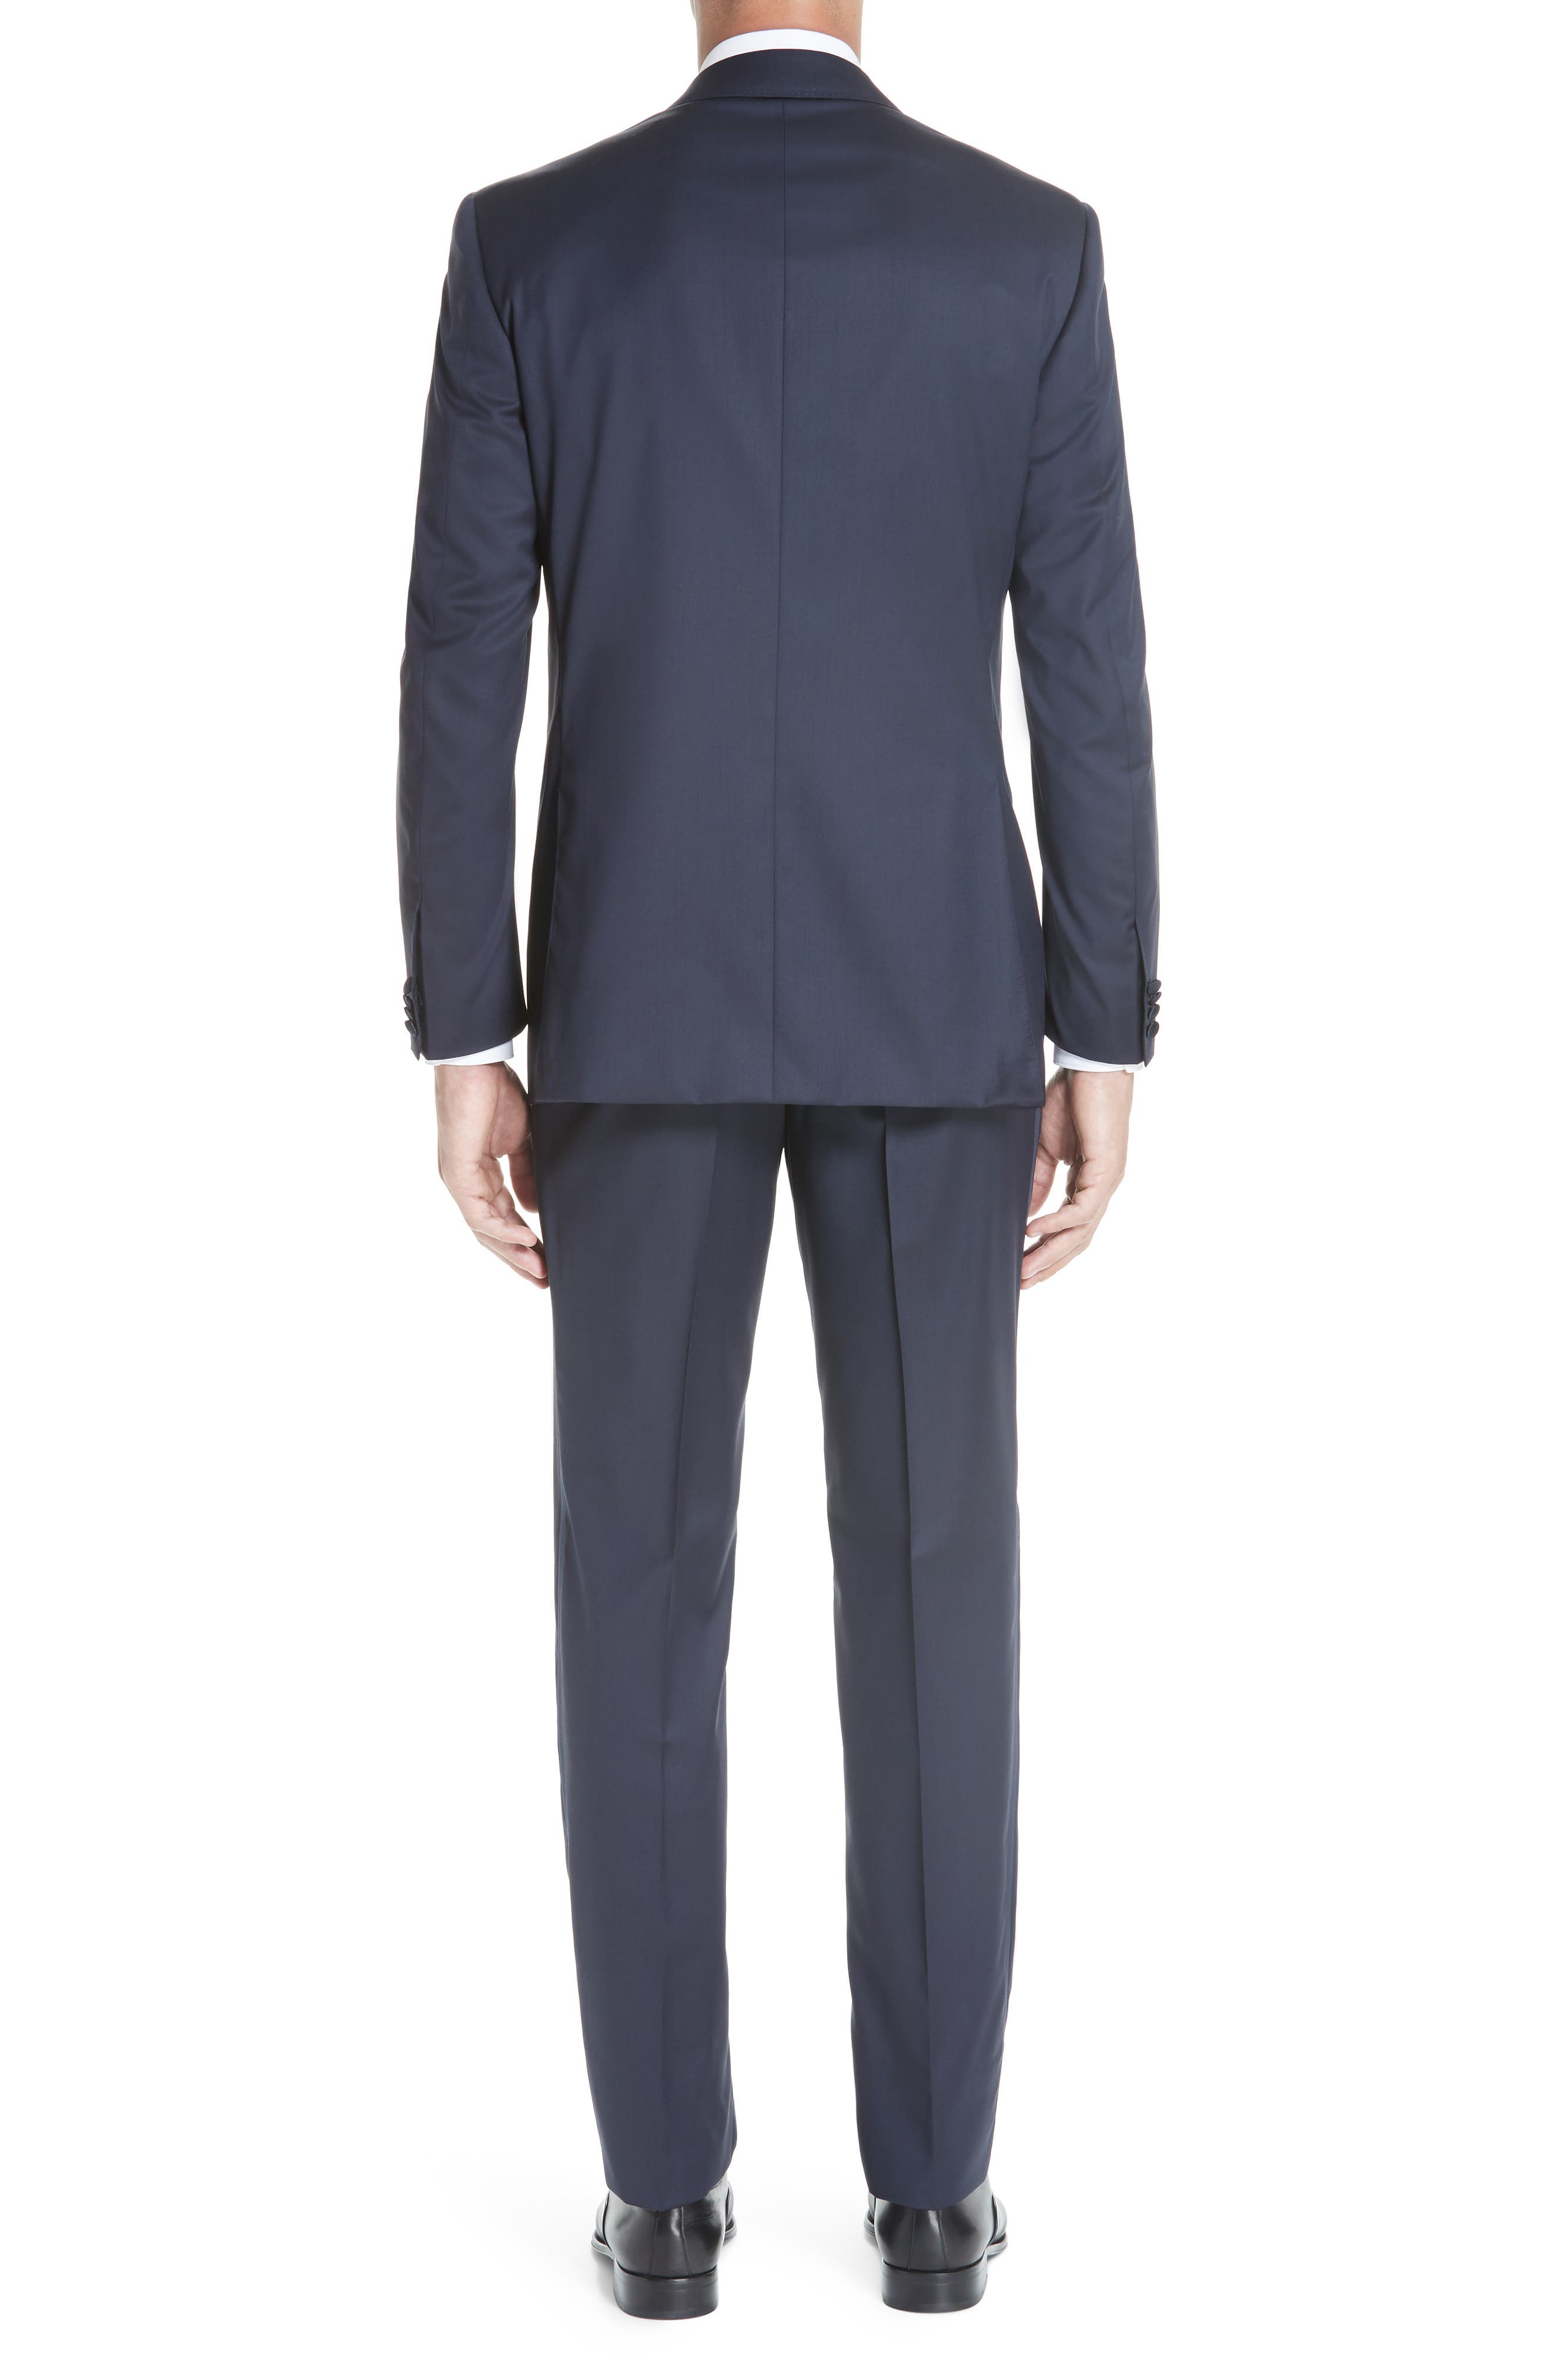 CANALI, Classic Fit Wool Tuxedo, Alternate thumbnail 2, color, NAVY